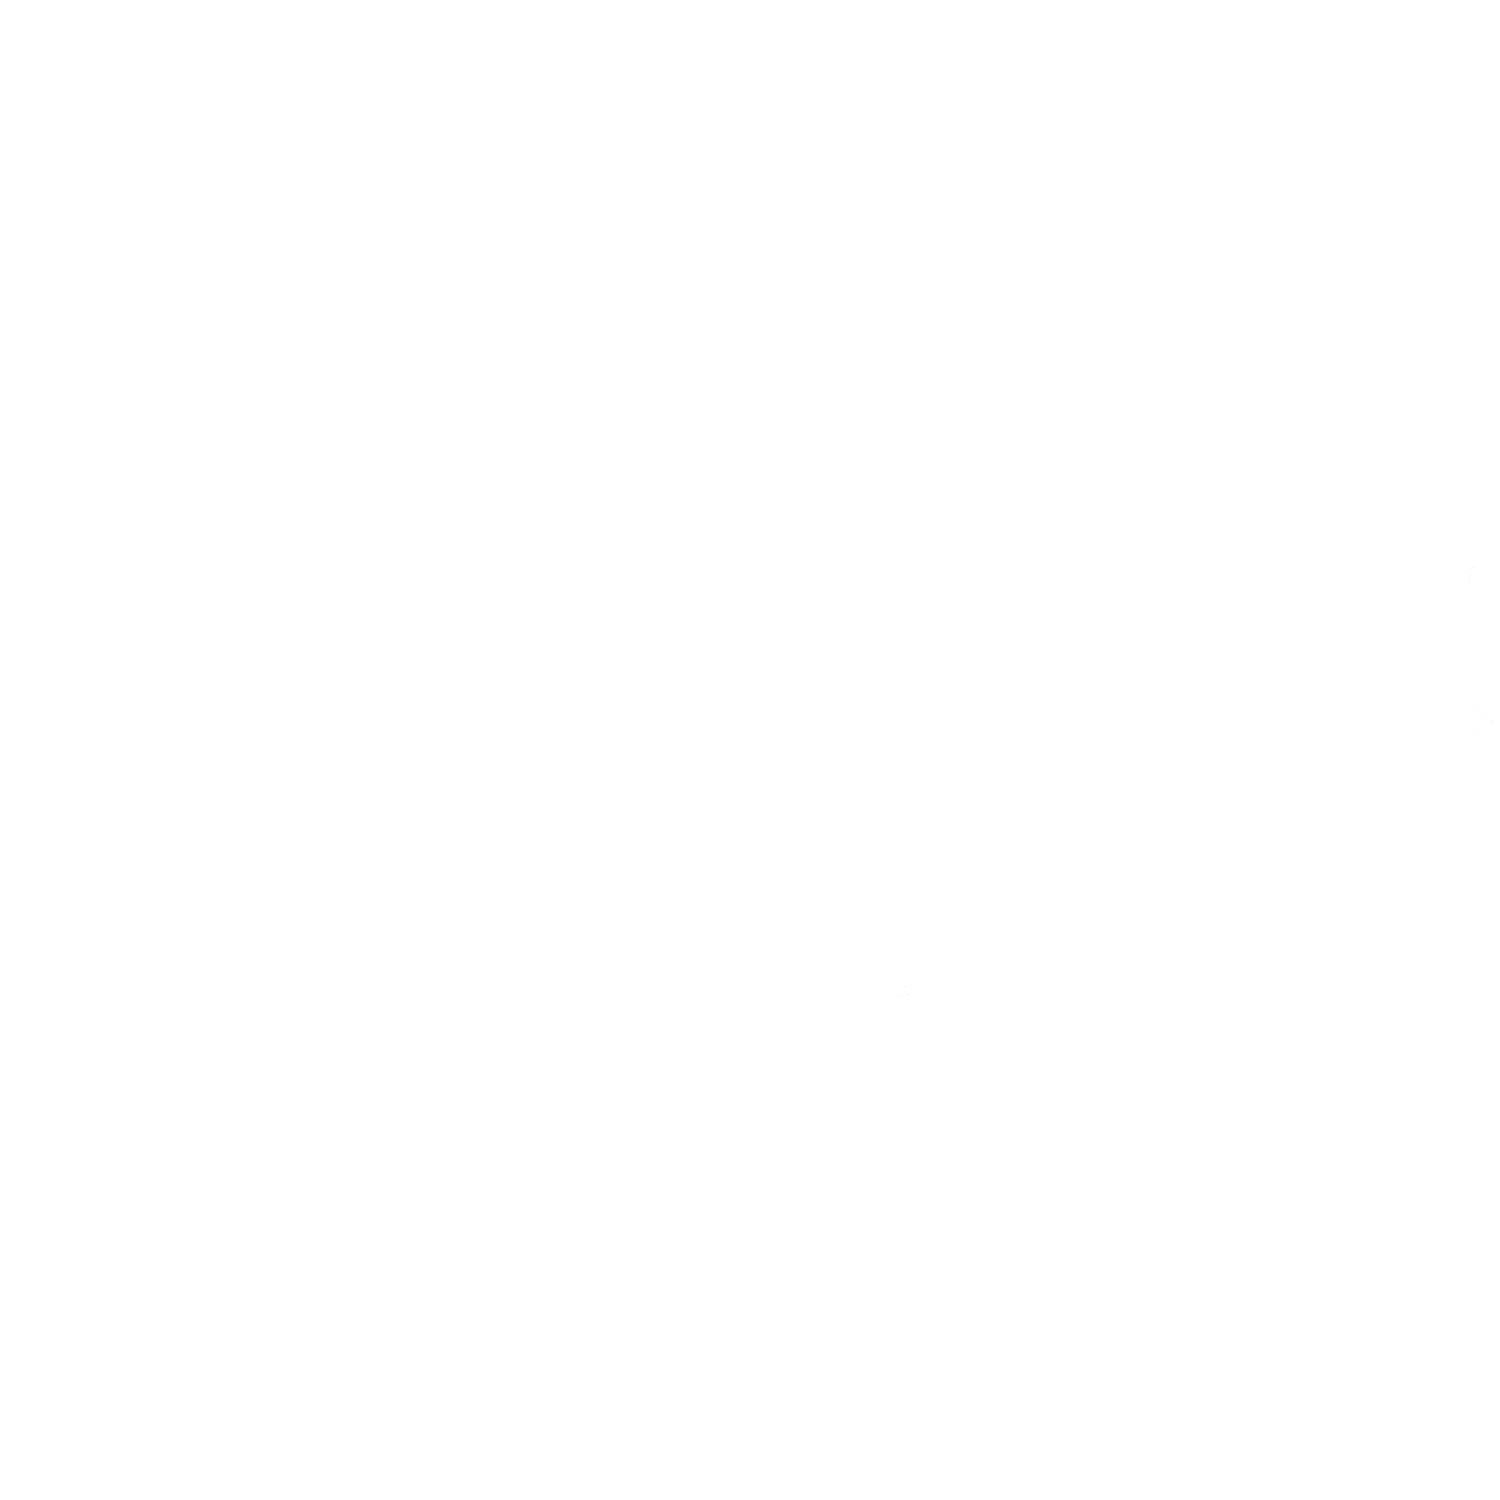 The Daily Grind Coffeeshop